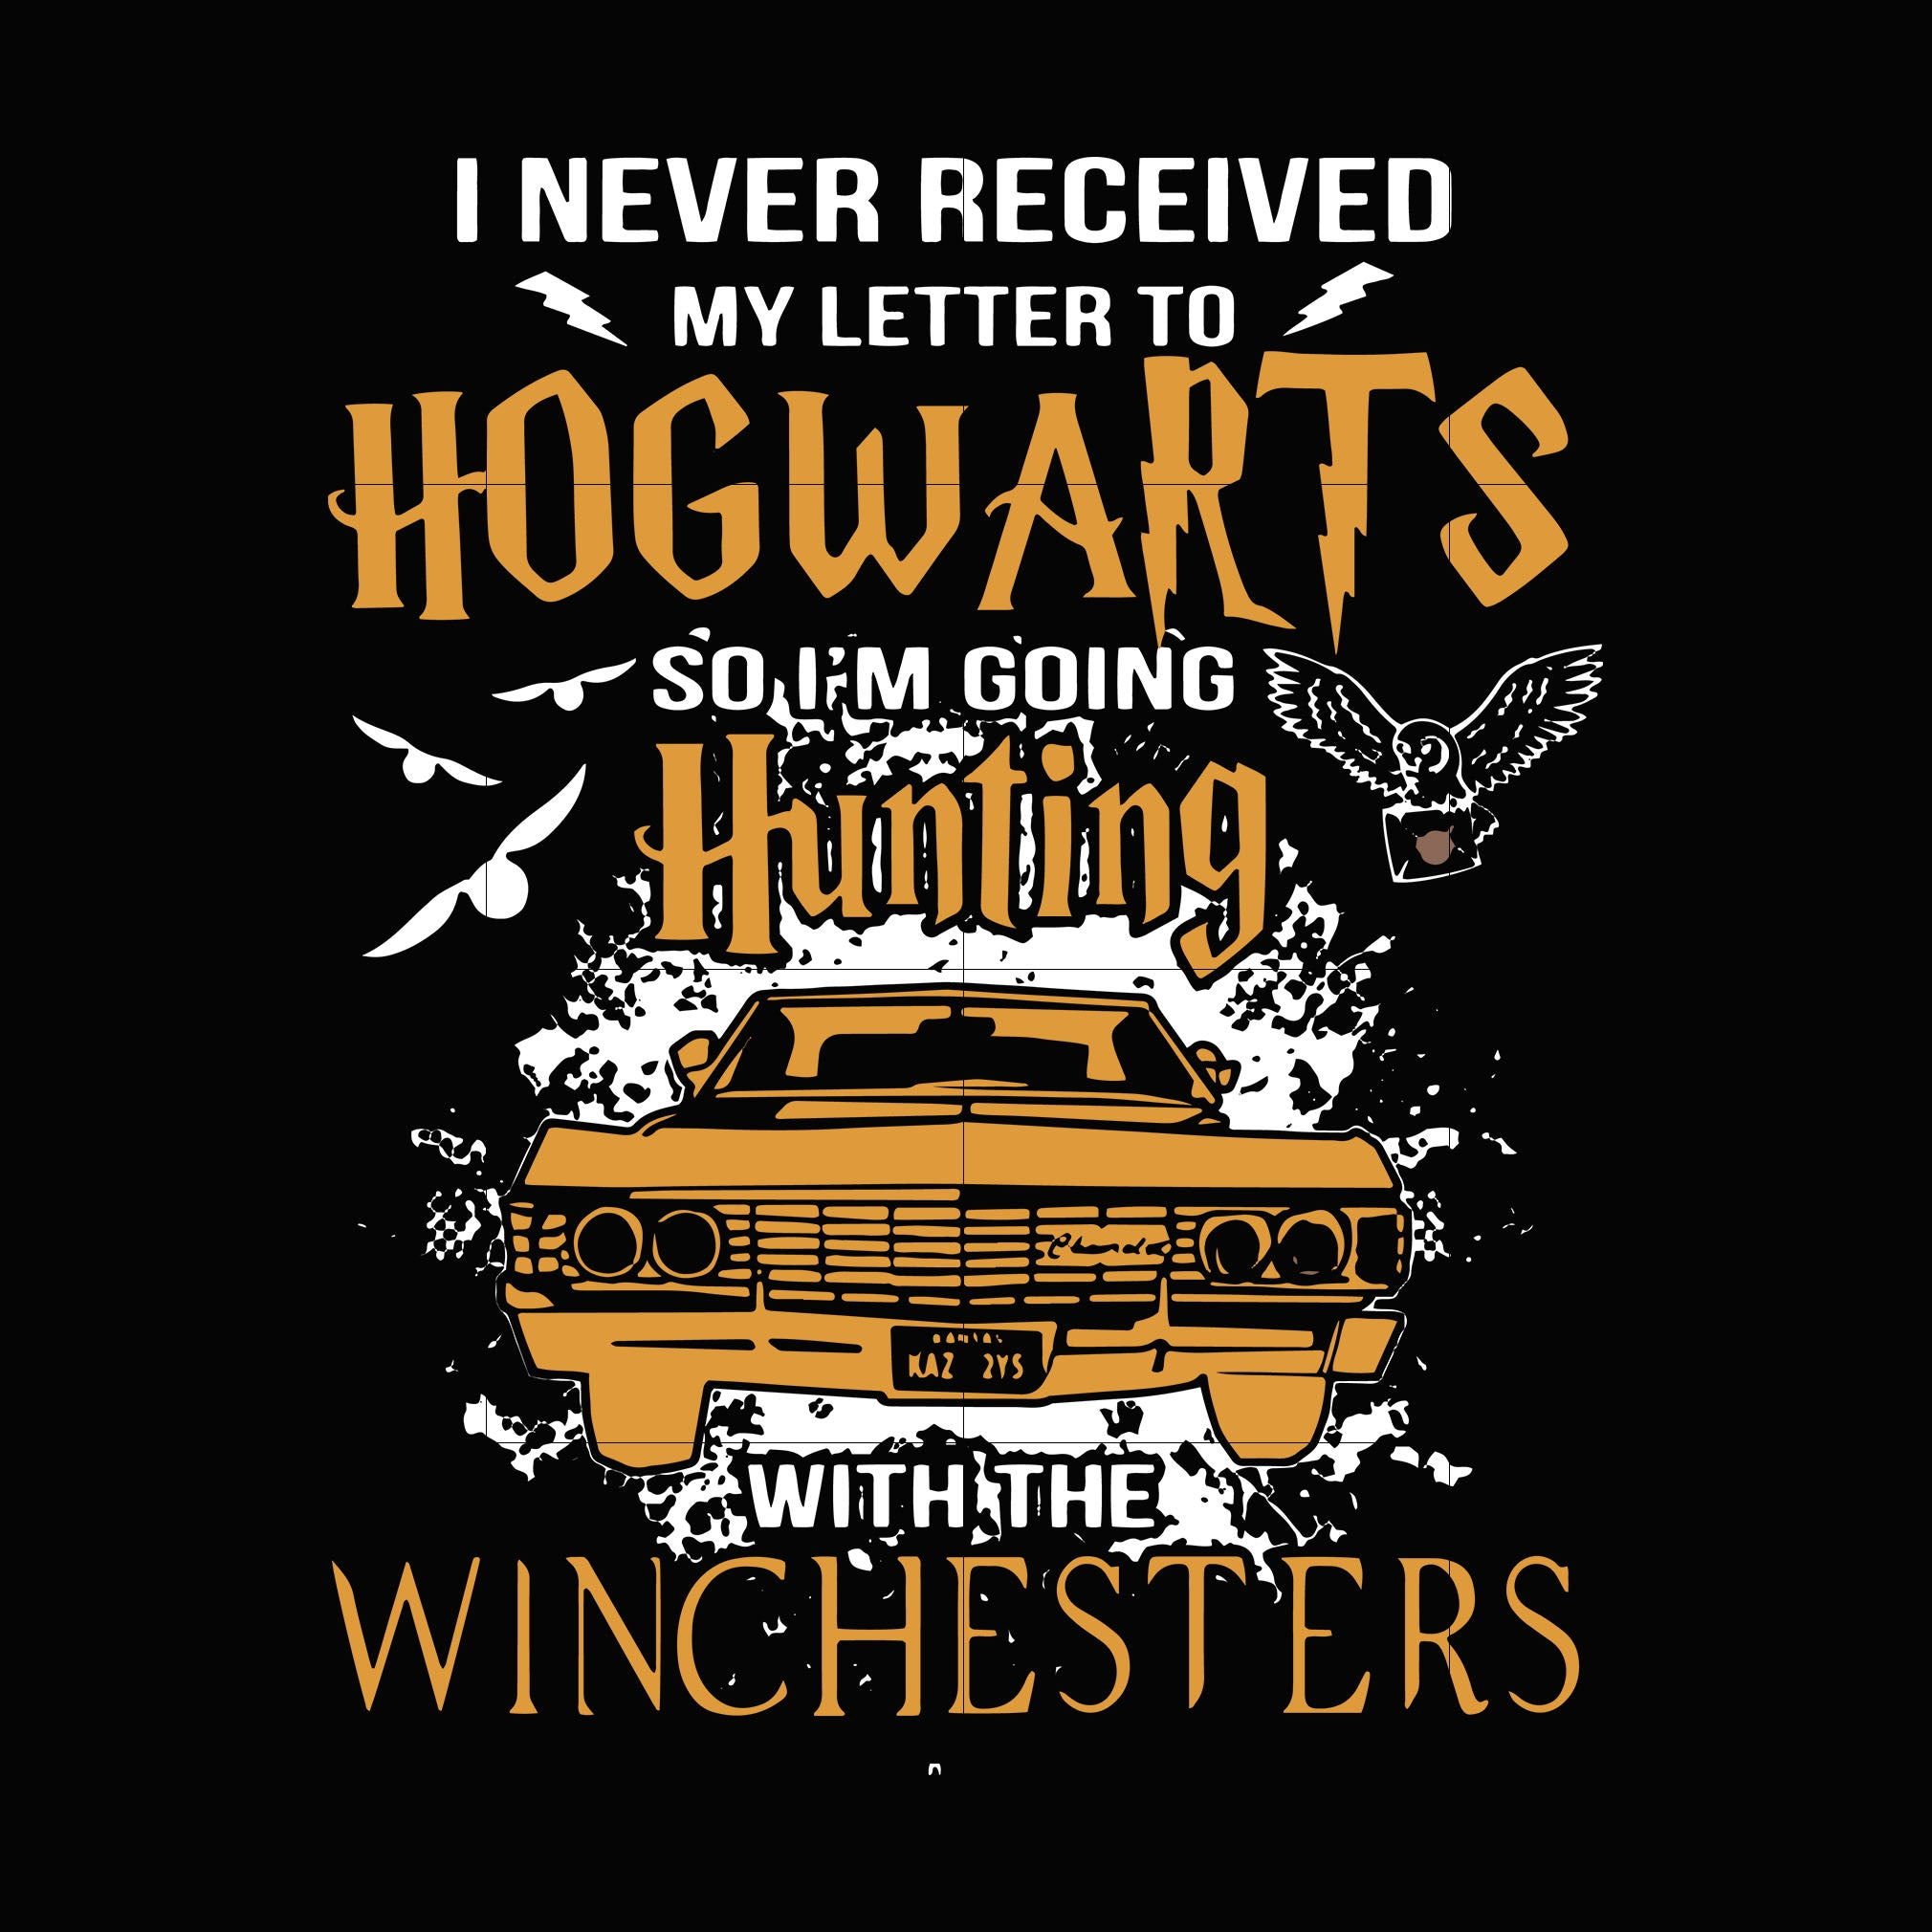 I never received my letter to HOGWARTS so I'm going hunting with the Winchesters svg,dxf,eps,png digital file